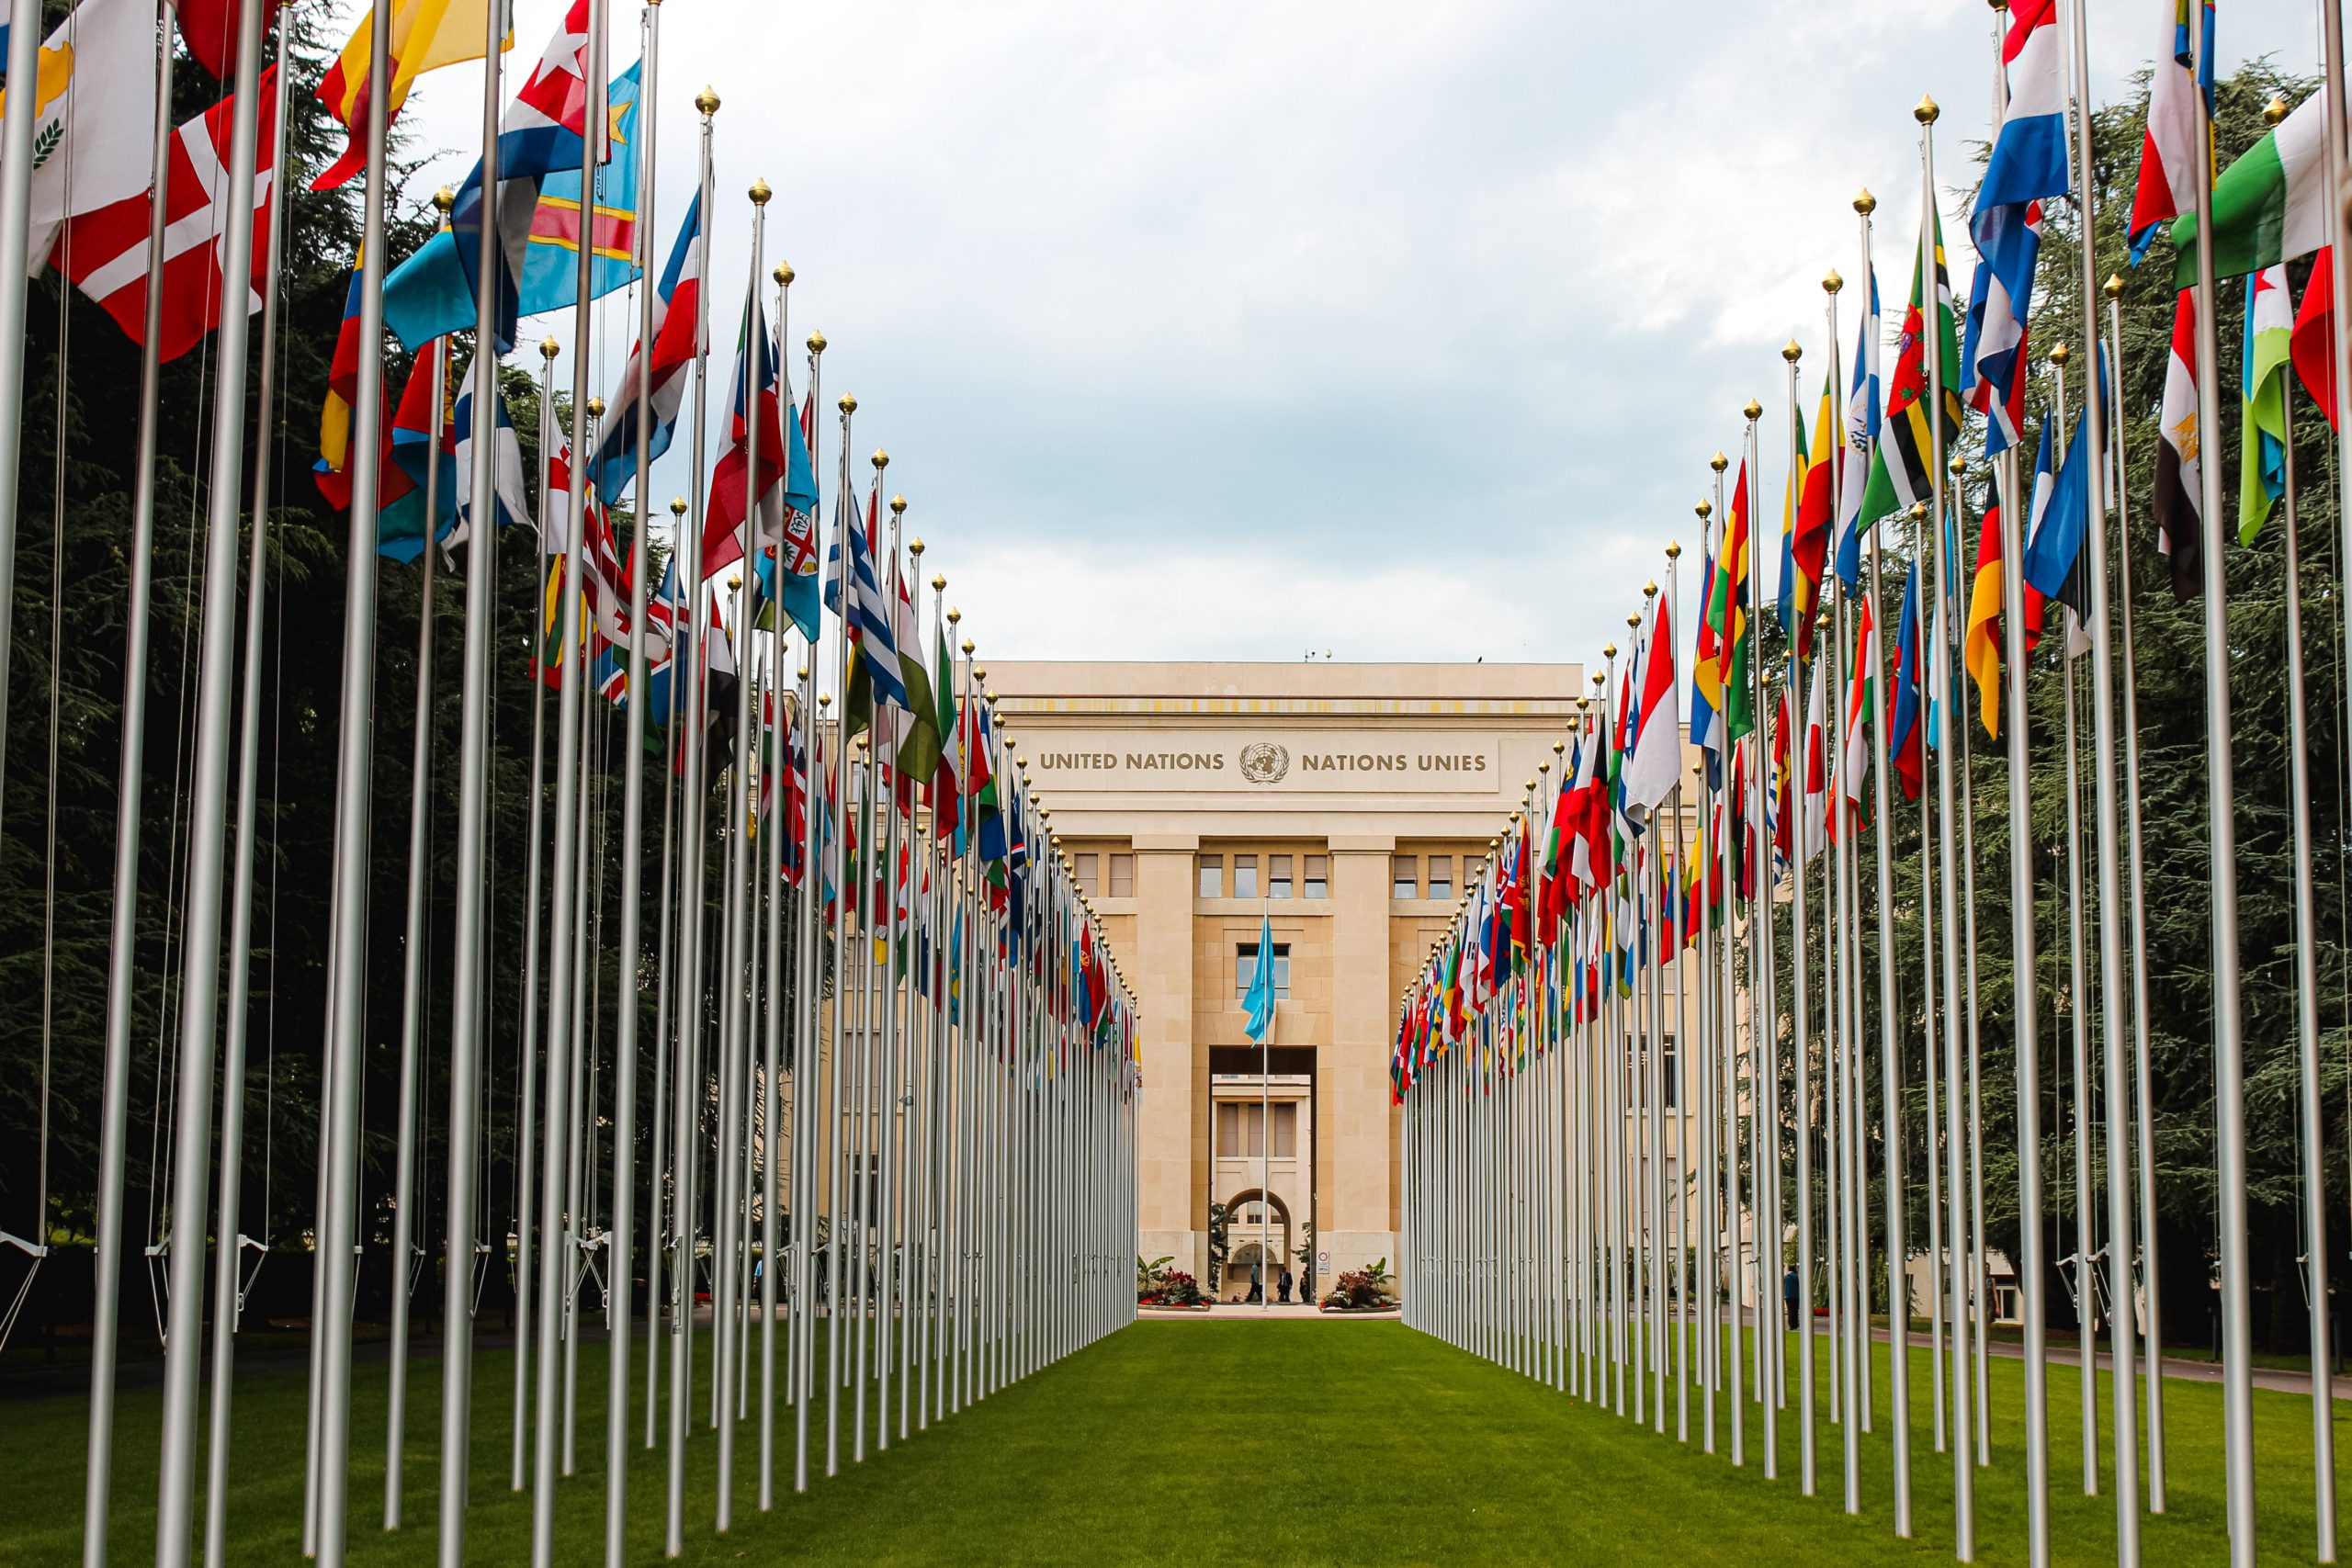 Disability is not a reason to sanction medically assisted dying – UN experts